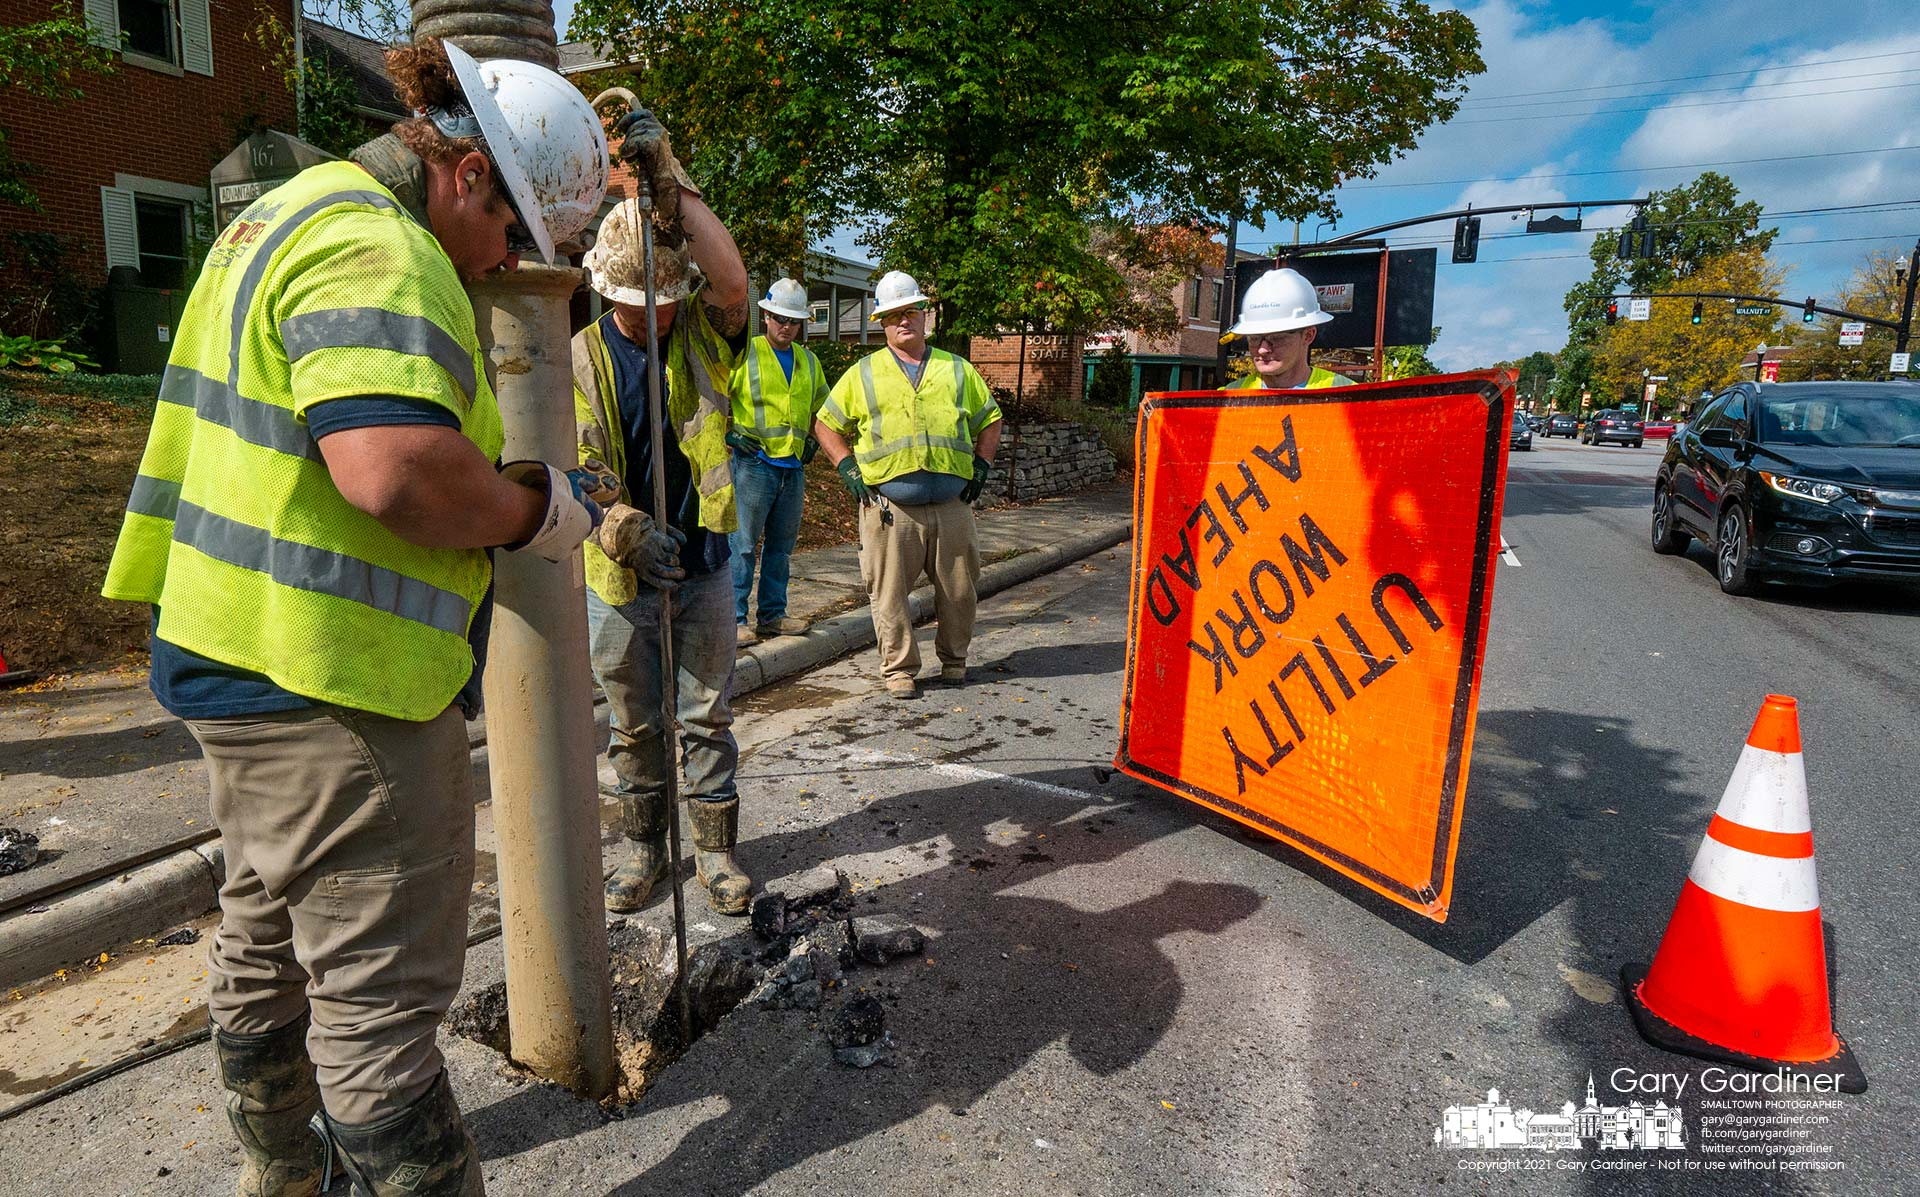 A work crew vacuums debris from a hole cut into State Street near Walnut Street where a pressure cutter cuts away the road to expose a gas line that needs repair. My Final Photo for Oct. 8, 2021.